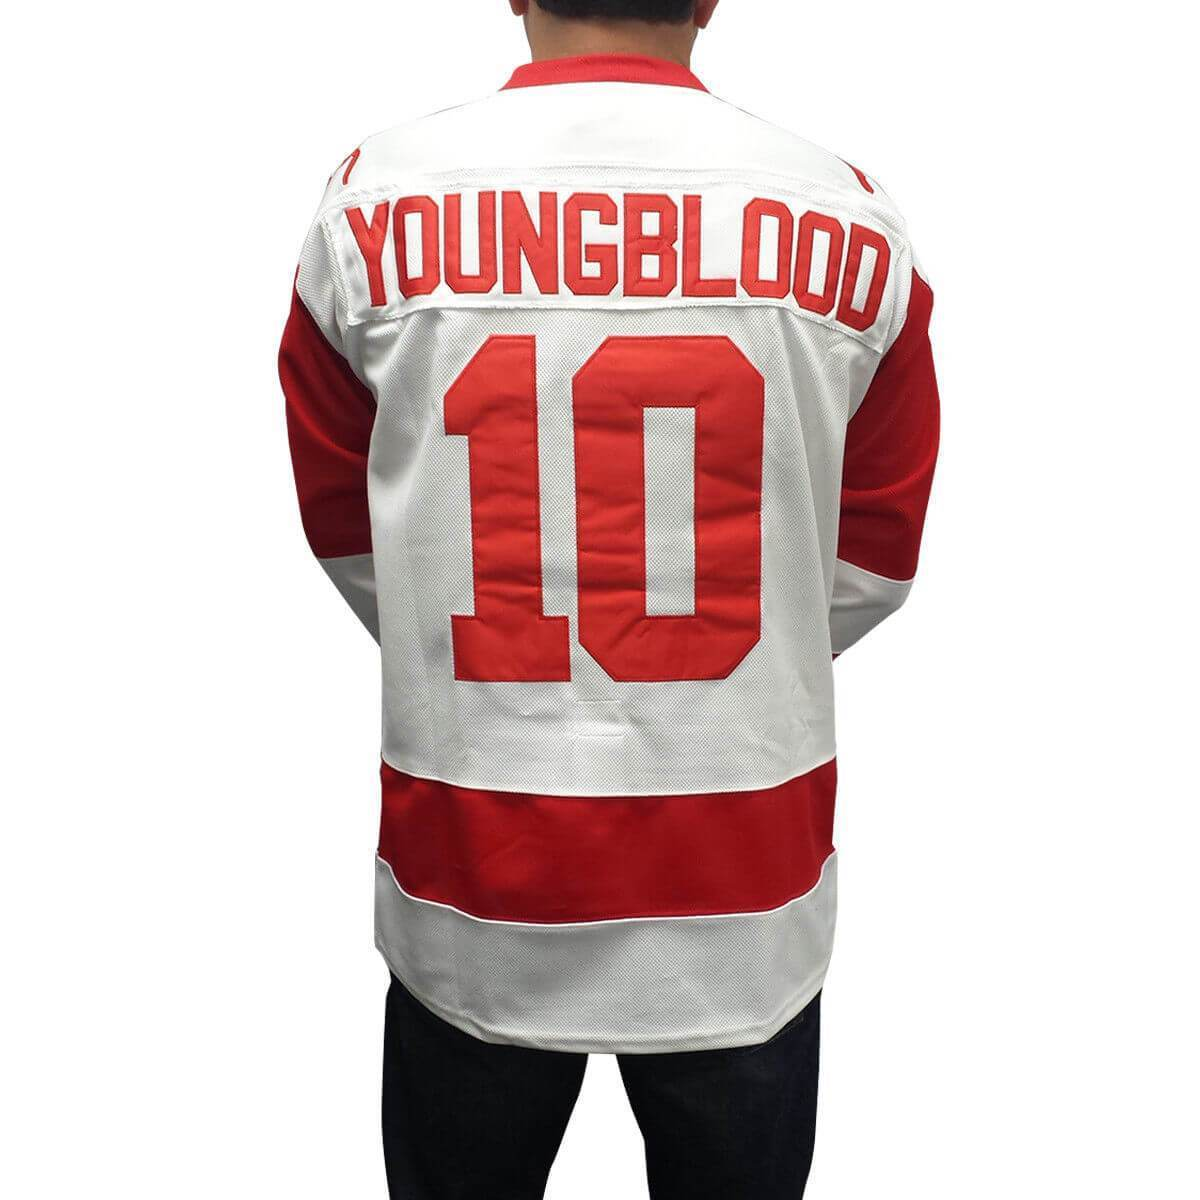 youngblood hockey jersey